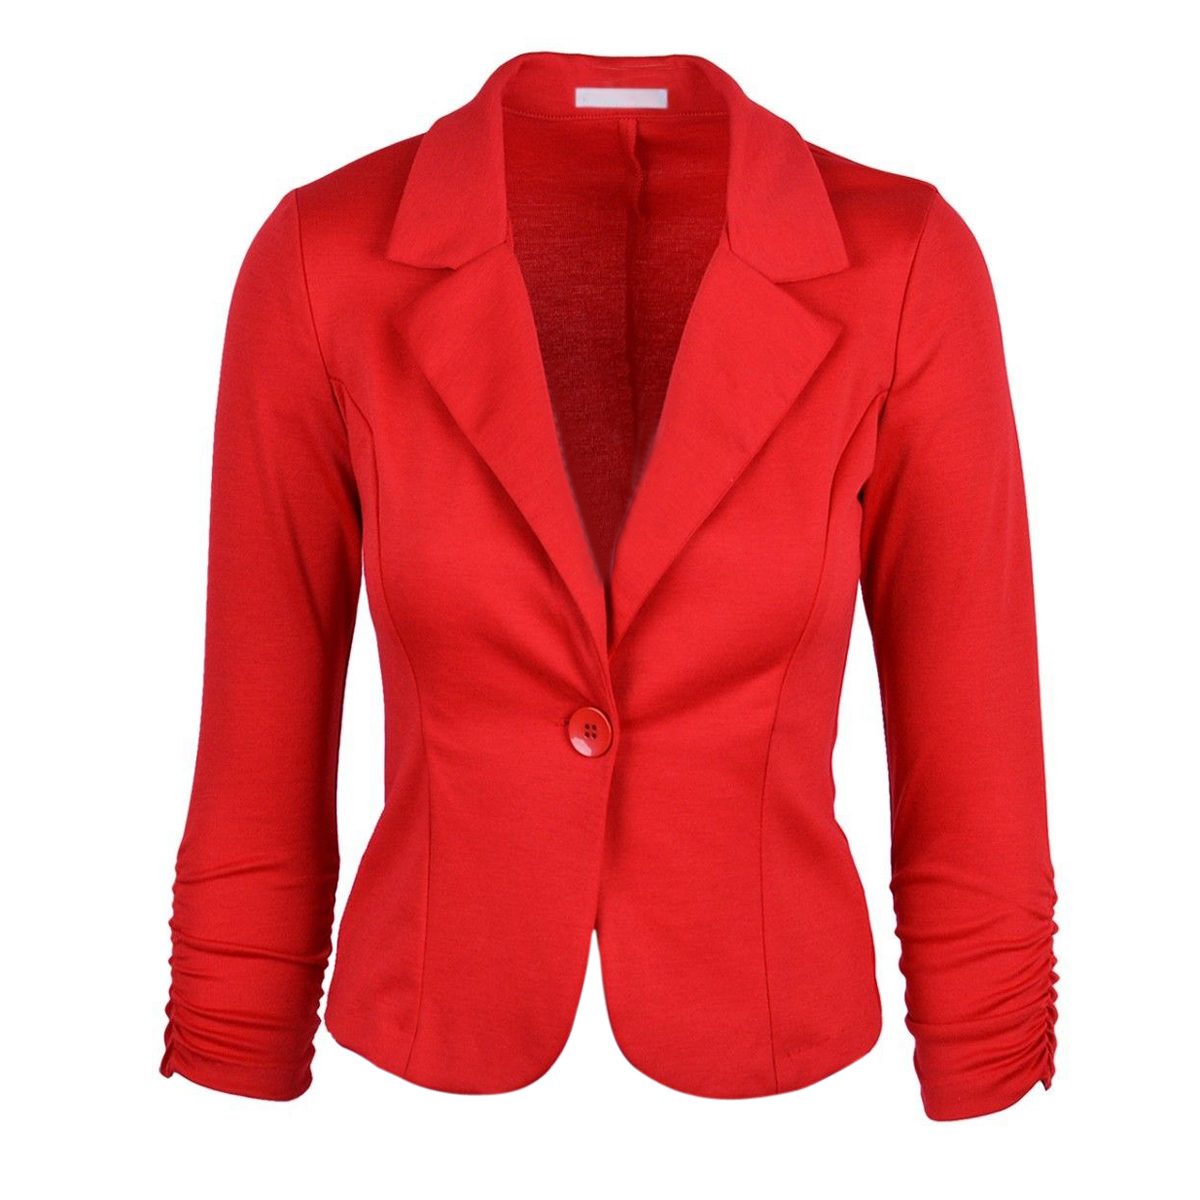 Find long red blazer at ShopStyle. Shop the latest collection of long red blazer from the most popular stores - all in one place.